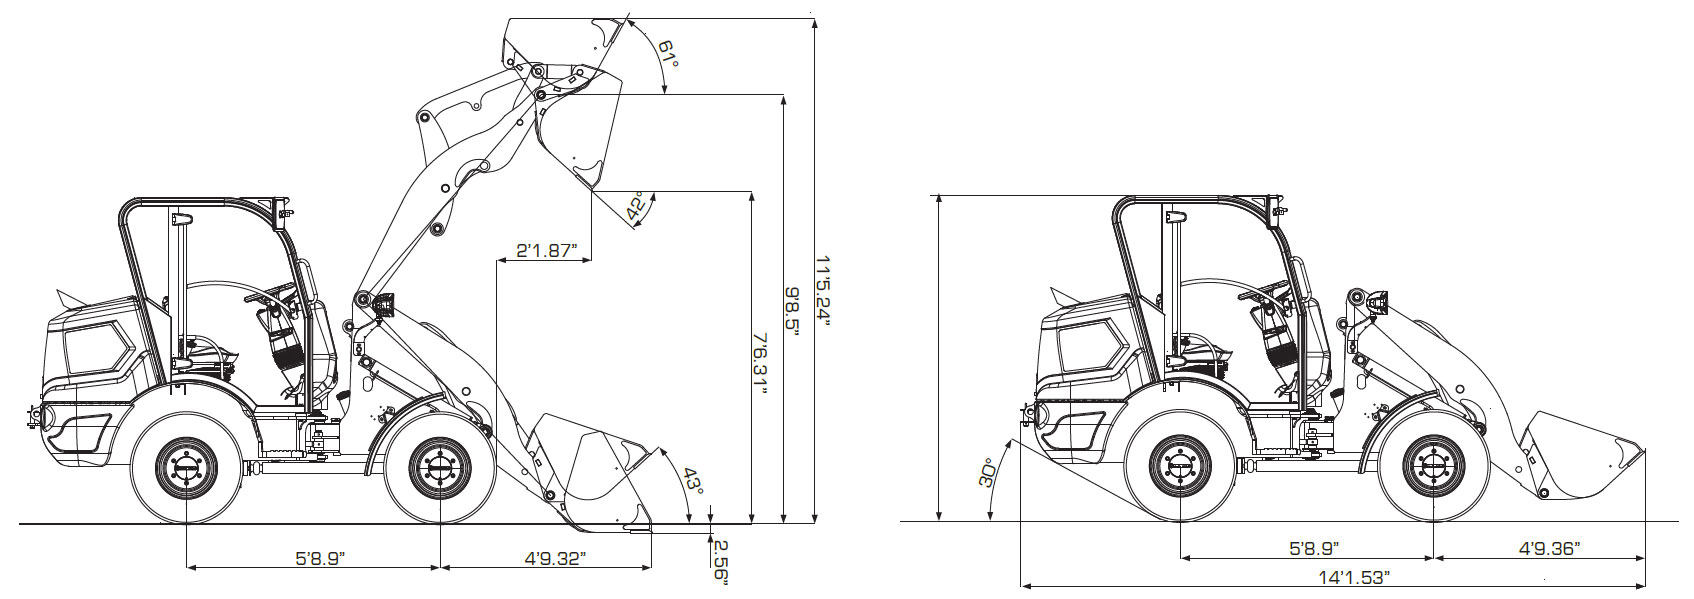 Image of specs on VF2.63C WHEEL LOADER sold by Ranko in Des Moines, IA